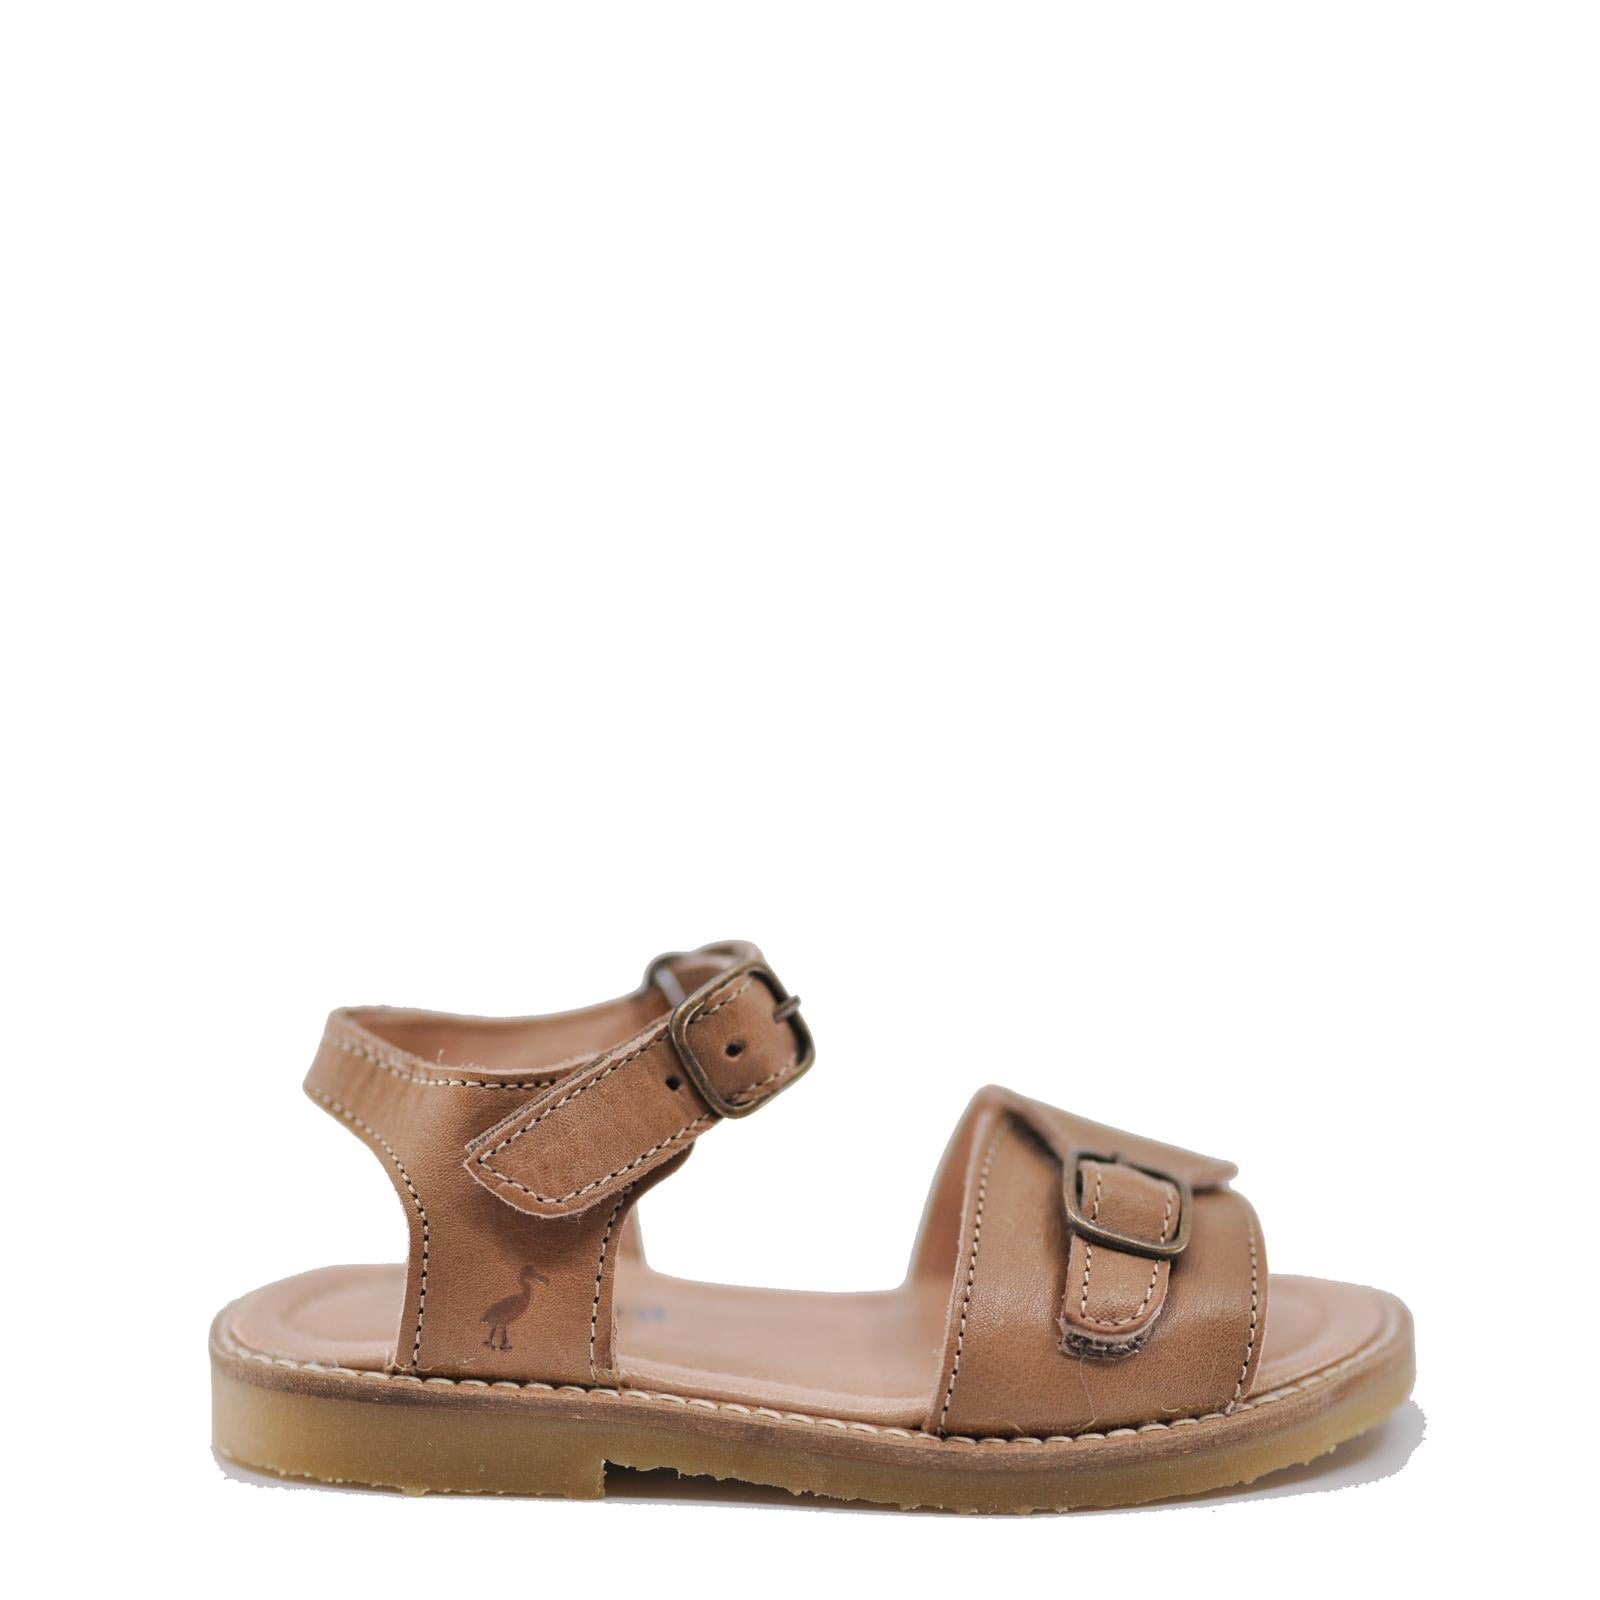 Petit Nord Latte Velcro Sandal-Tassel Children Shoes